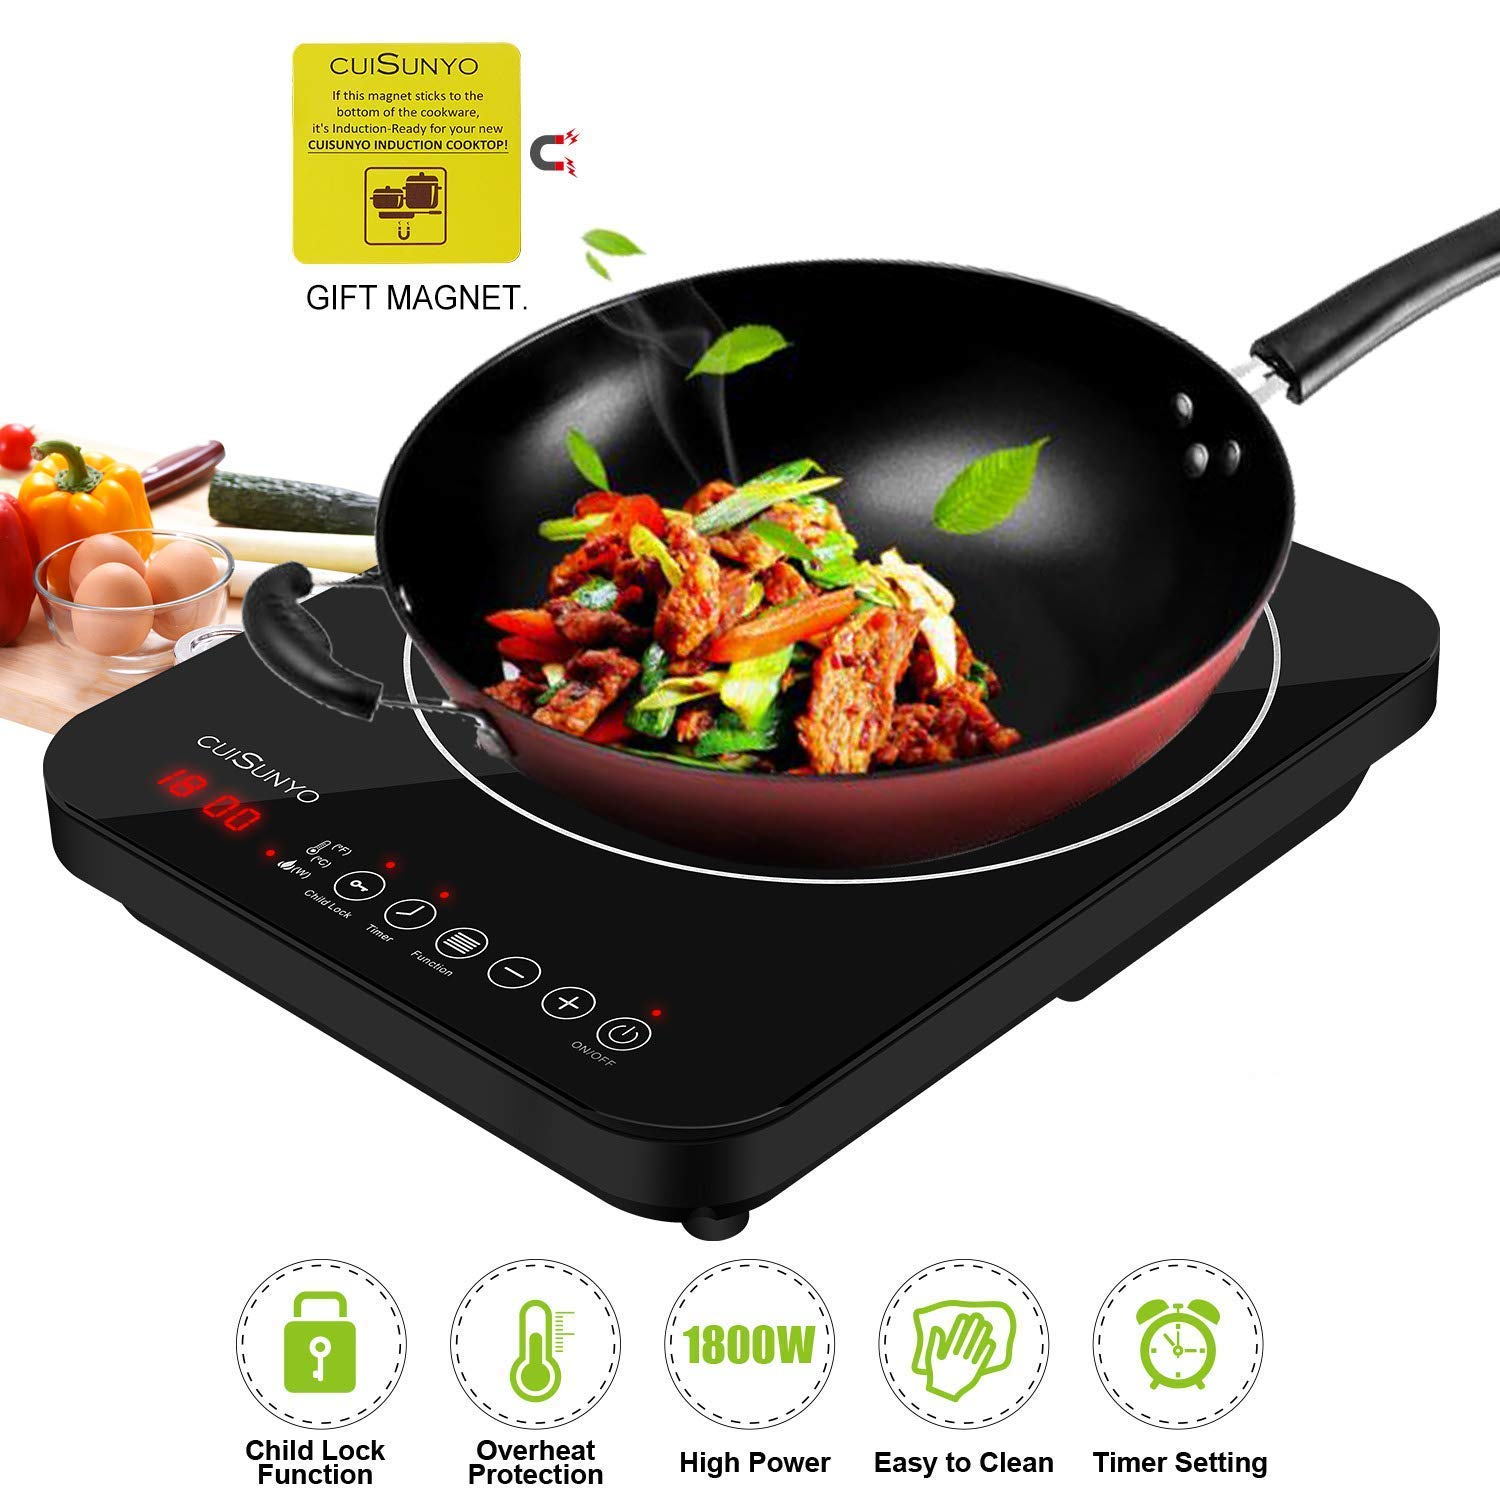 CUISUNYO Portable Induction Cooktop,1800W Countertop Burner with Digital Sensor and Kids Safety Lock, 11 Temperature Levels Suitable for Cast Iron Cookware